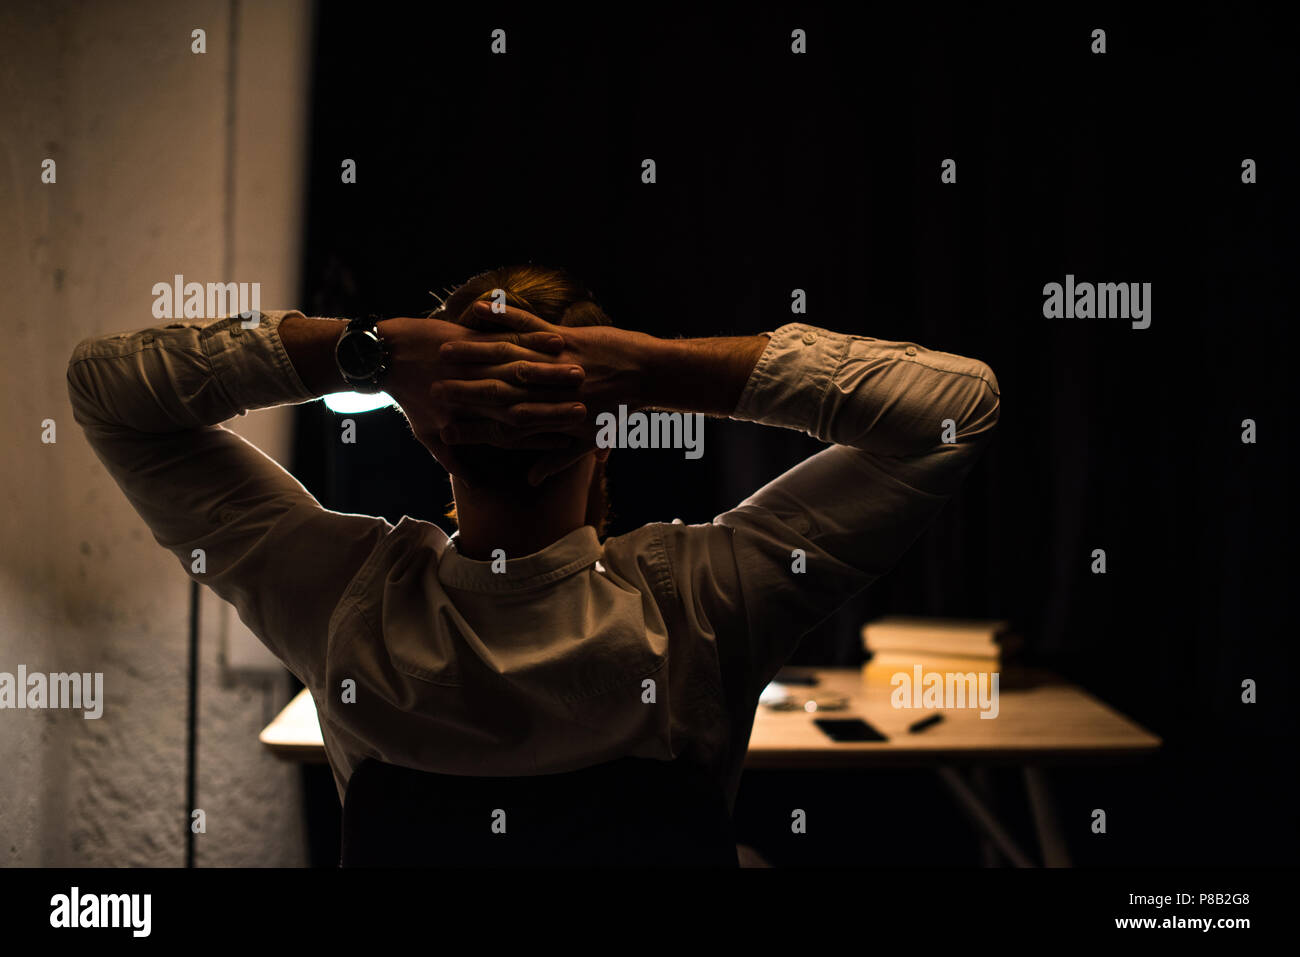 rear view of businessman sitting in office with hands behind head - Stock Image